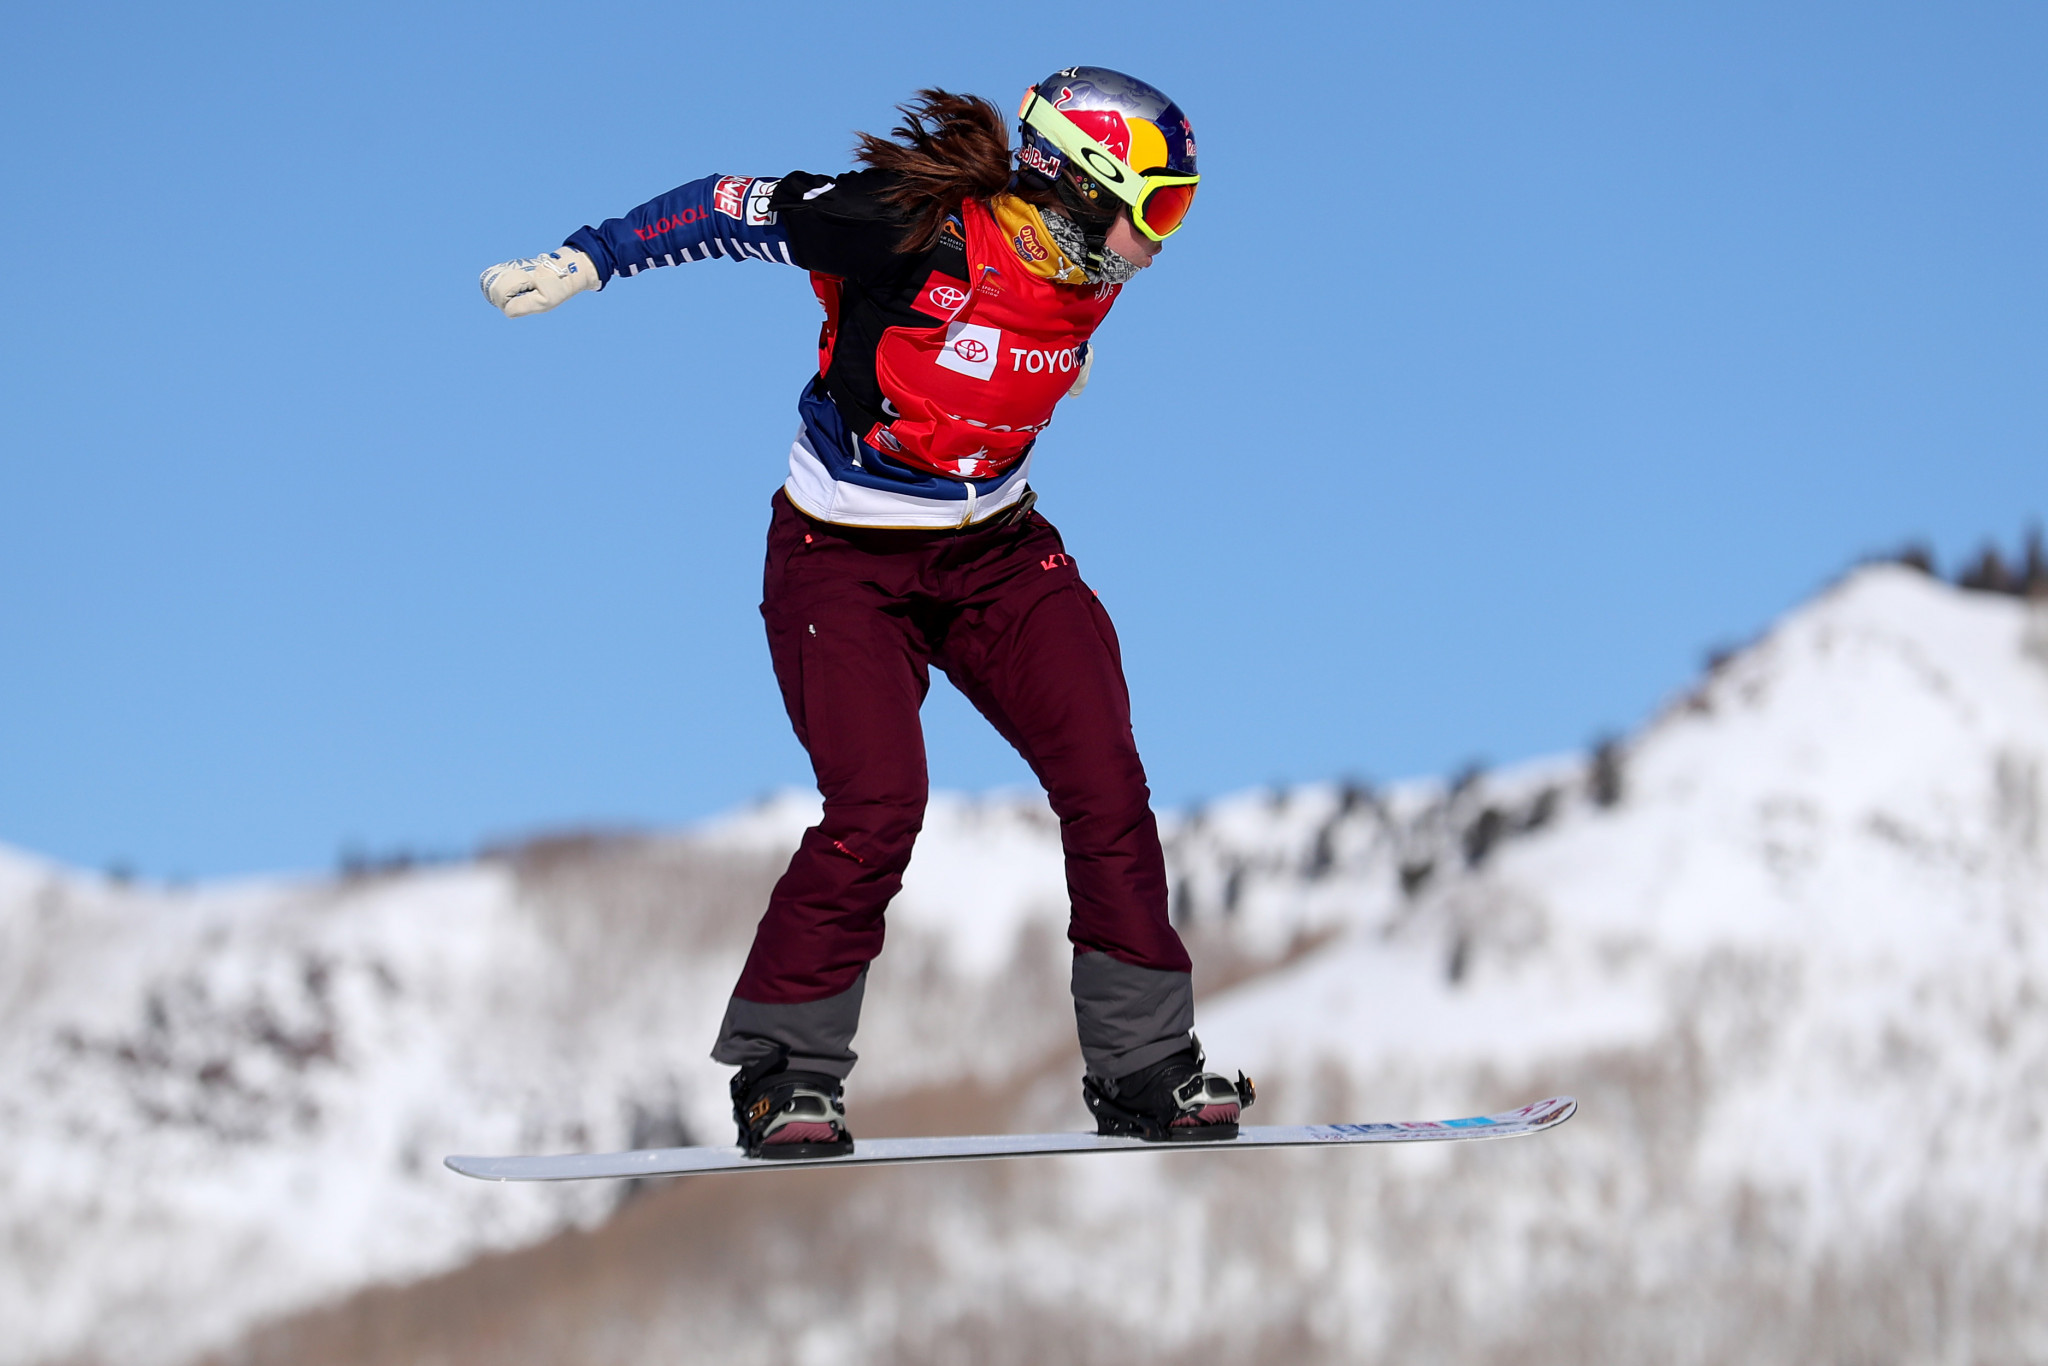 The Czech Republic's Eva Samkova, defending overall Snowboard Cross World Cup champion, won at Montafon in Austria in the opening event of this season's series ©Getty Images